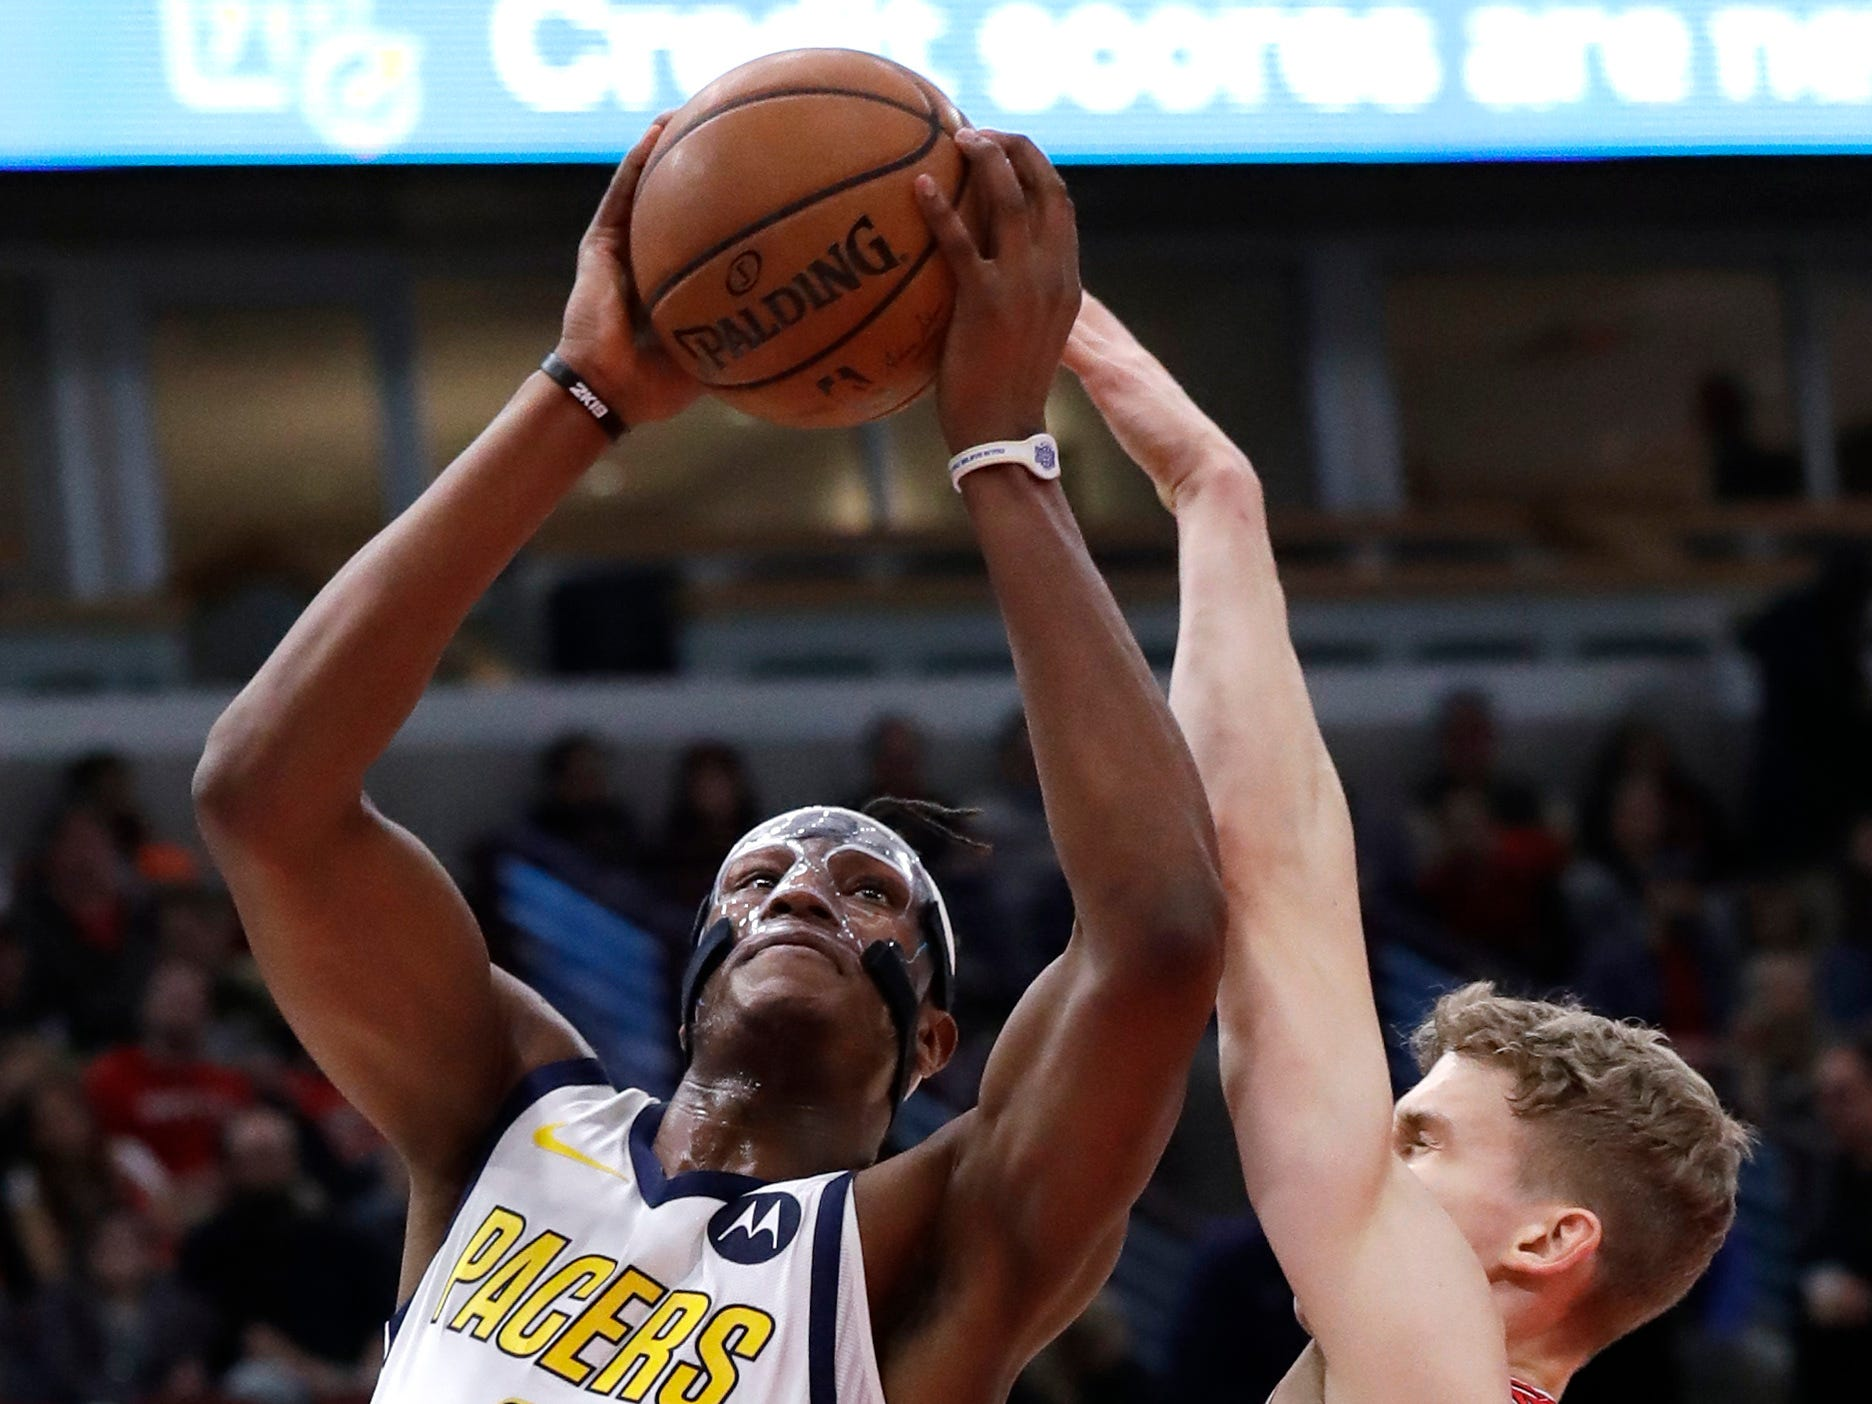 Indiana Pacers center Myles Turner, left, shoots against Chicago Bulls forward Lauri Markkanen during the first half of an NBA basketball game Friday, Jan. 4, 2019, in Chicago. (AP Photo/Nam Y. Huh)